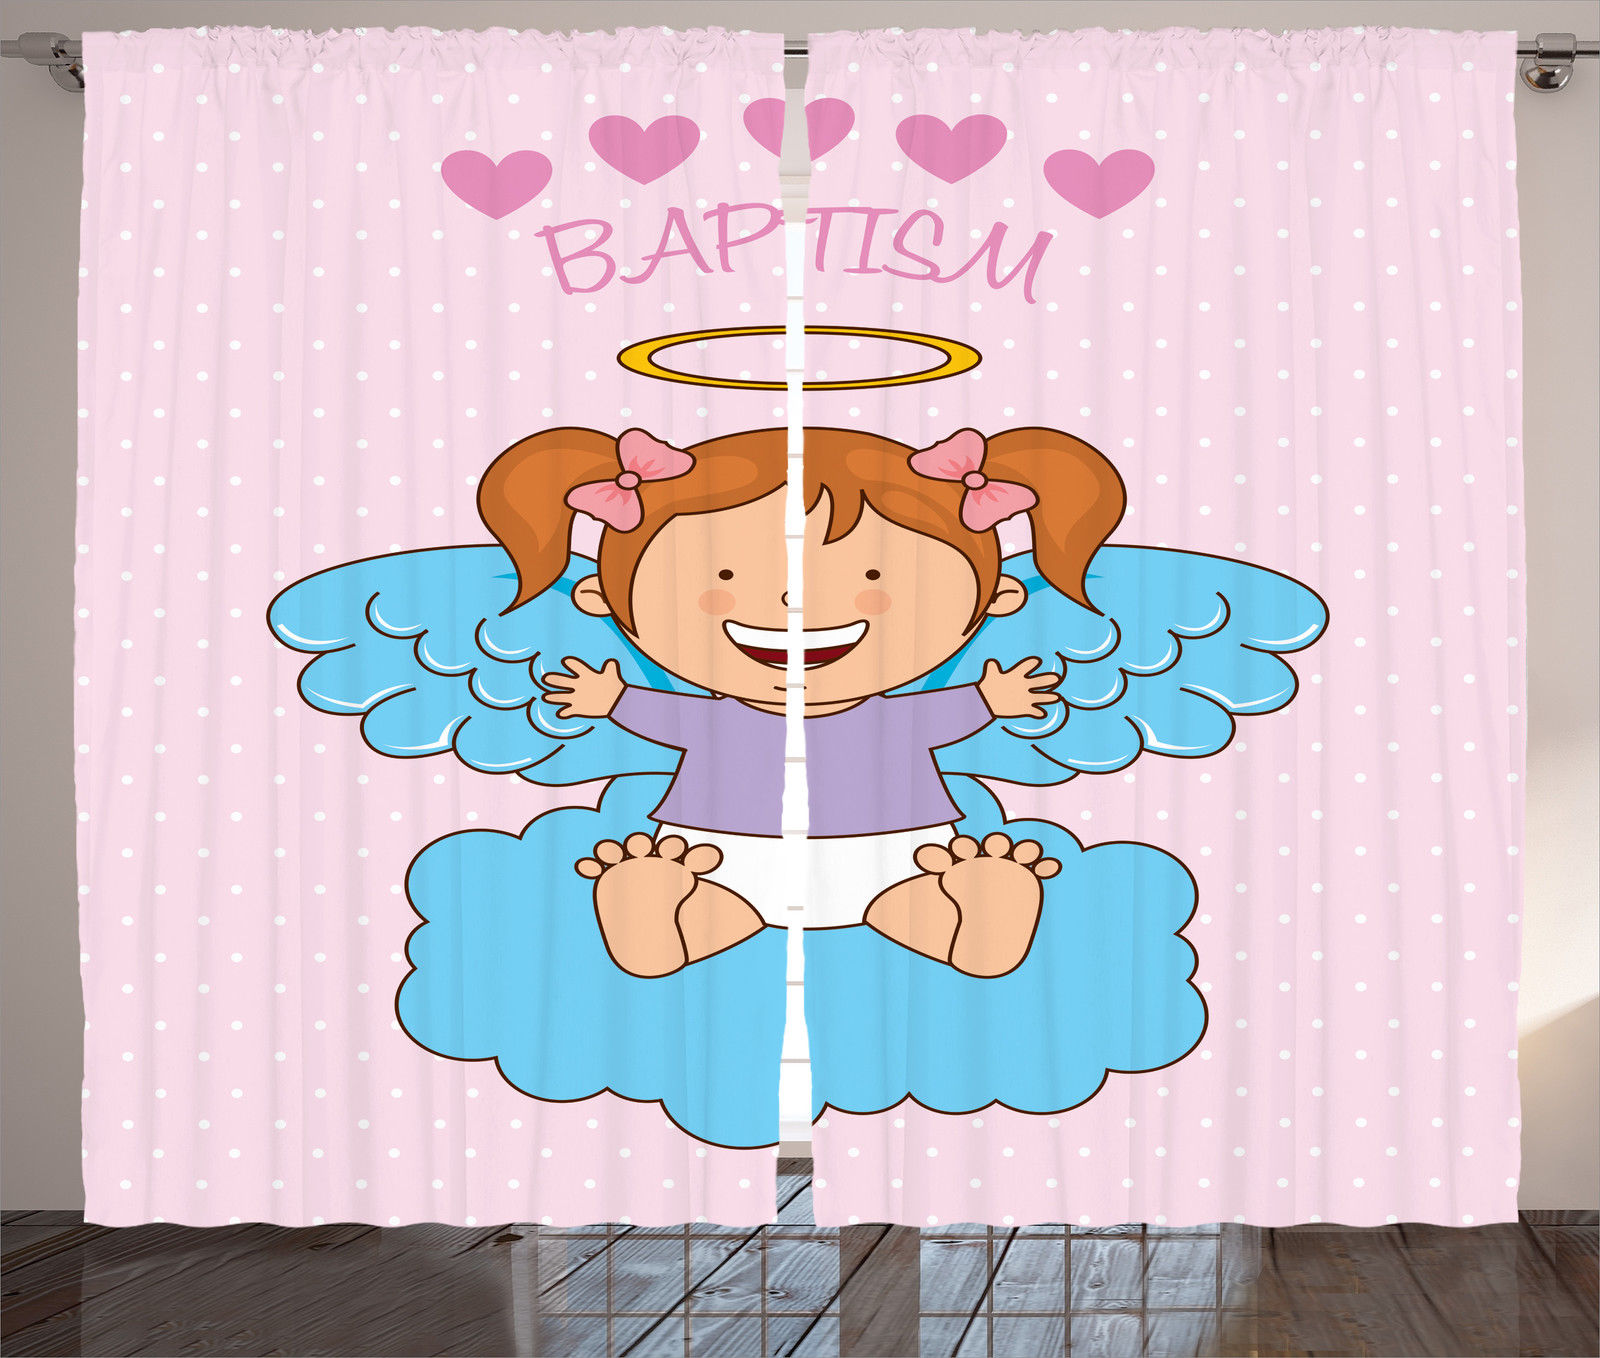 Baptism Theme Design Kids Sacrament Symbol Ornamental Art